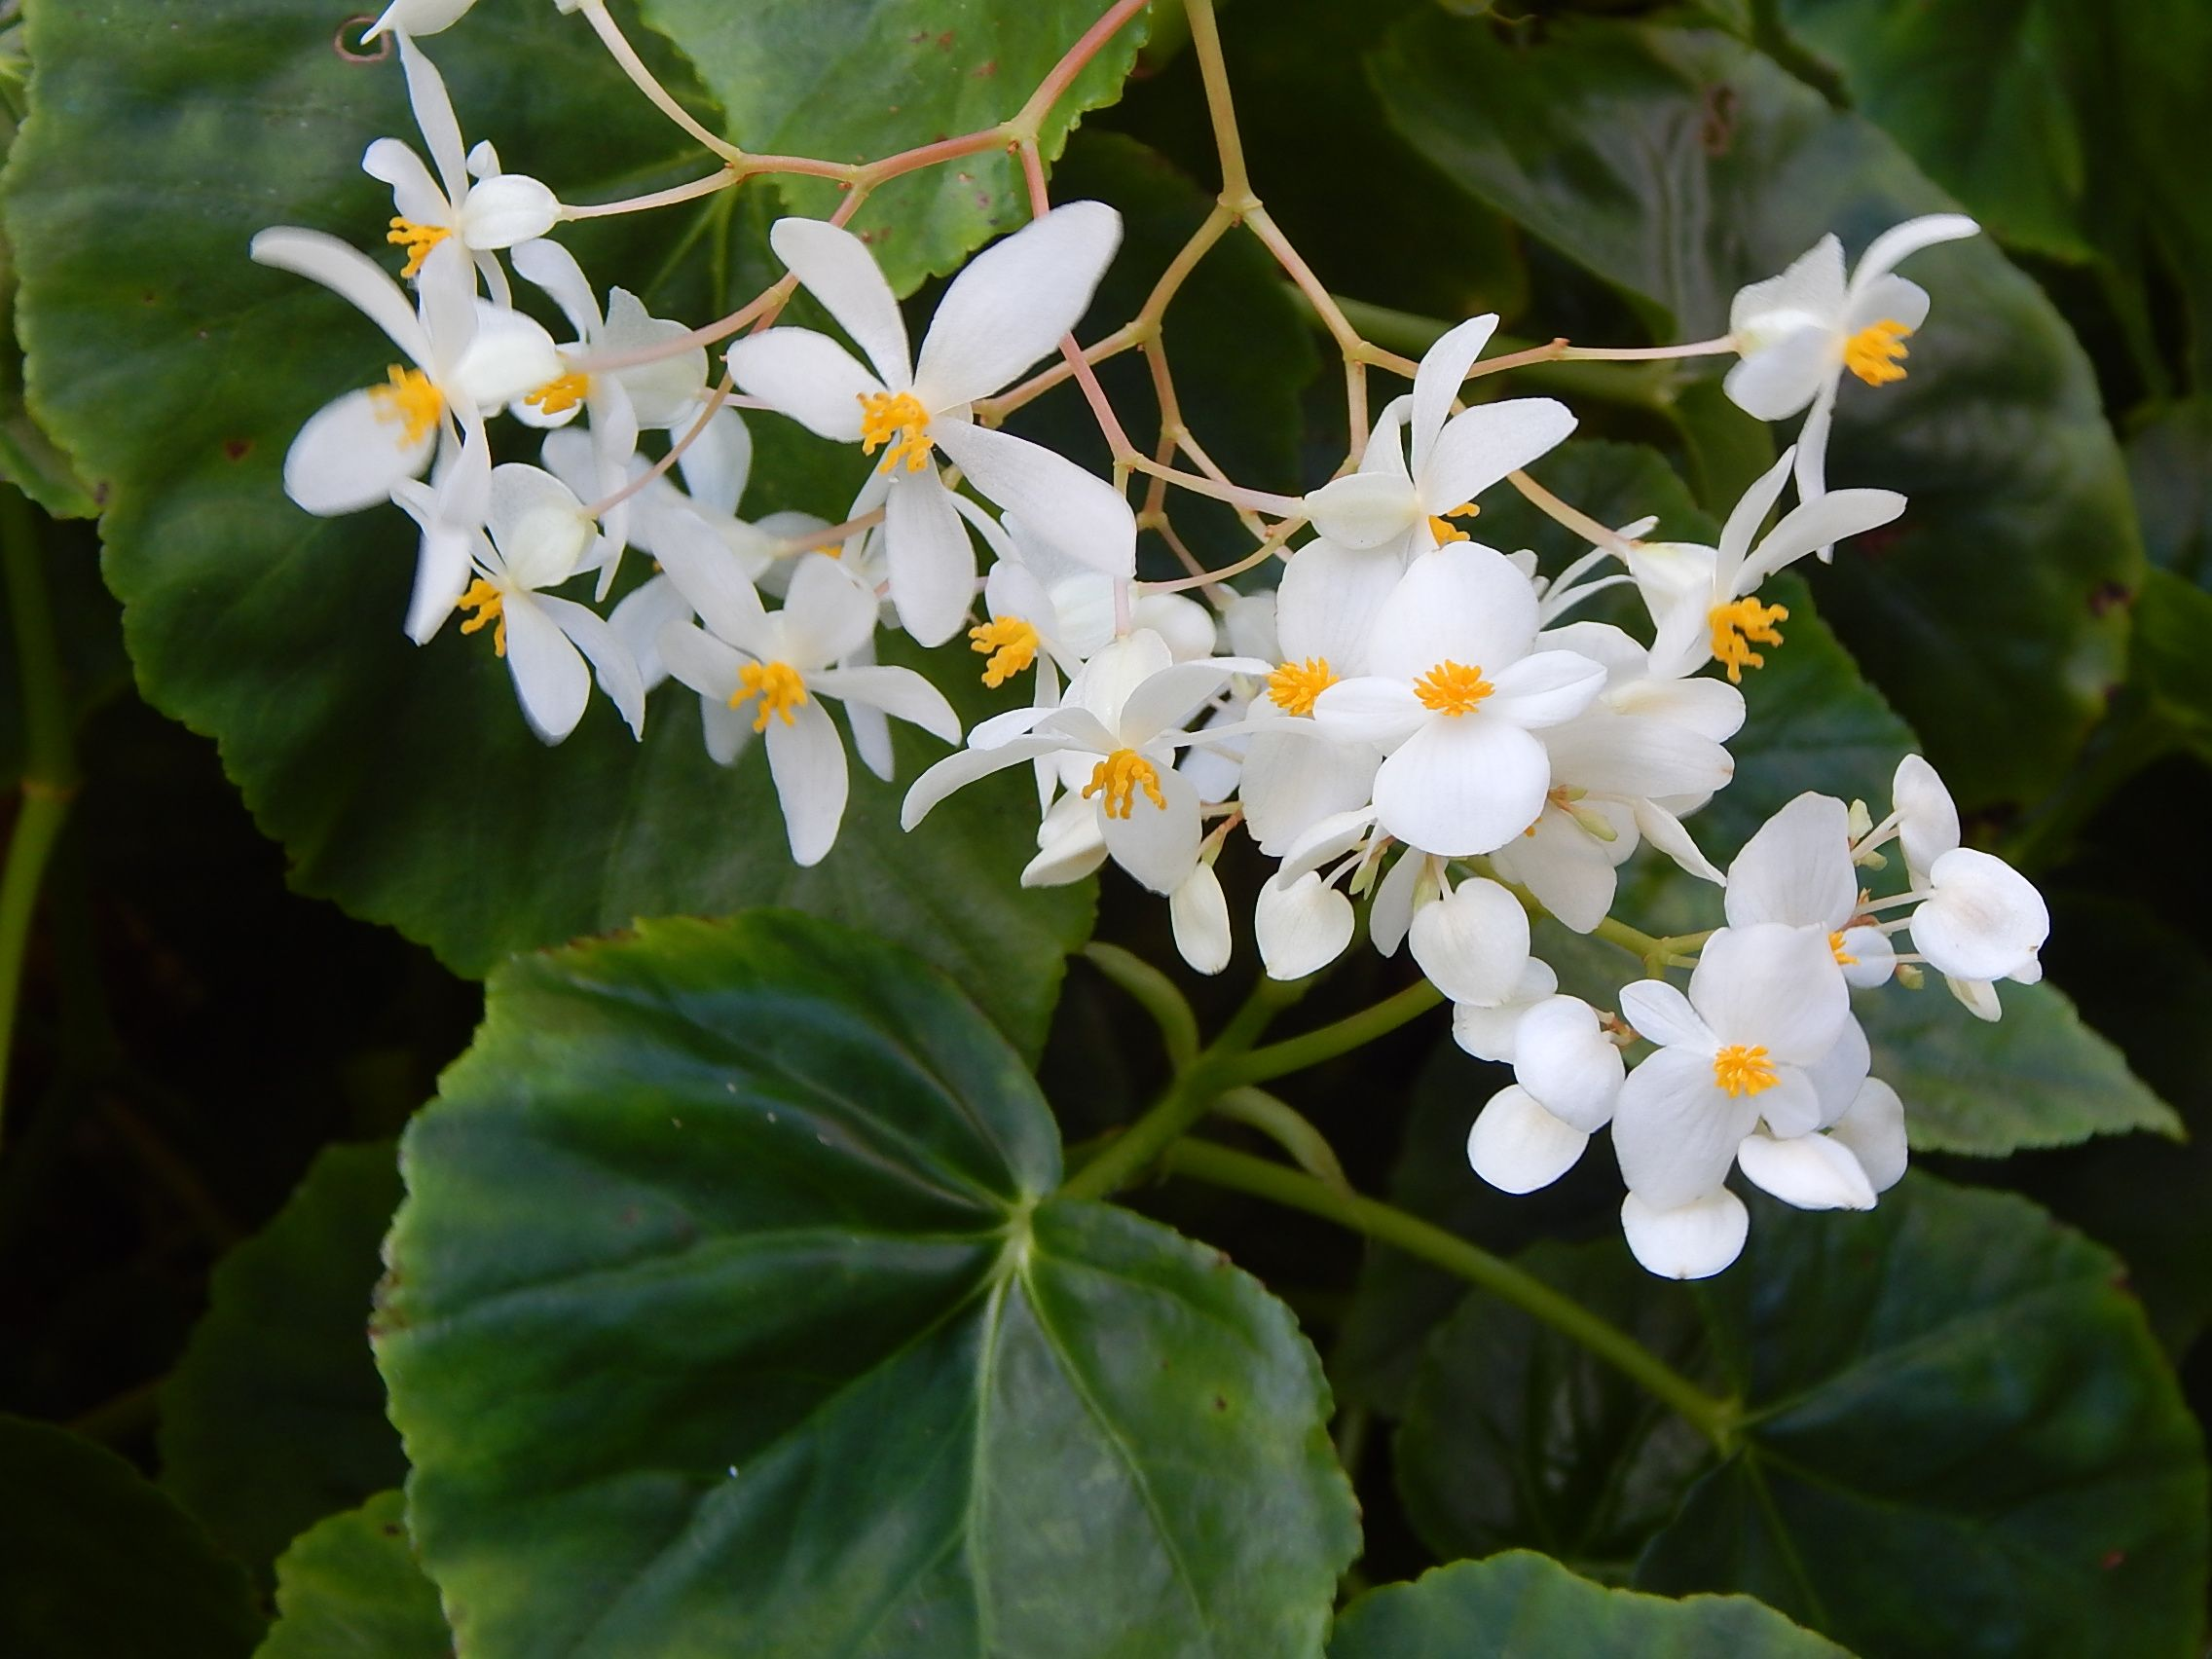 Begonia With Small White Flowers Tropical Plants Small White Flowers Beautiful Flowers